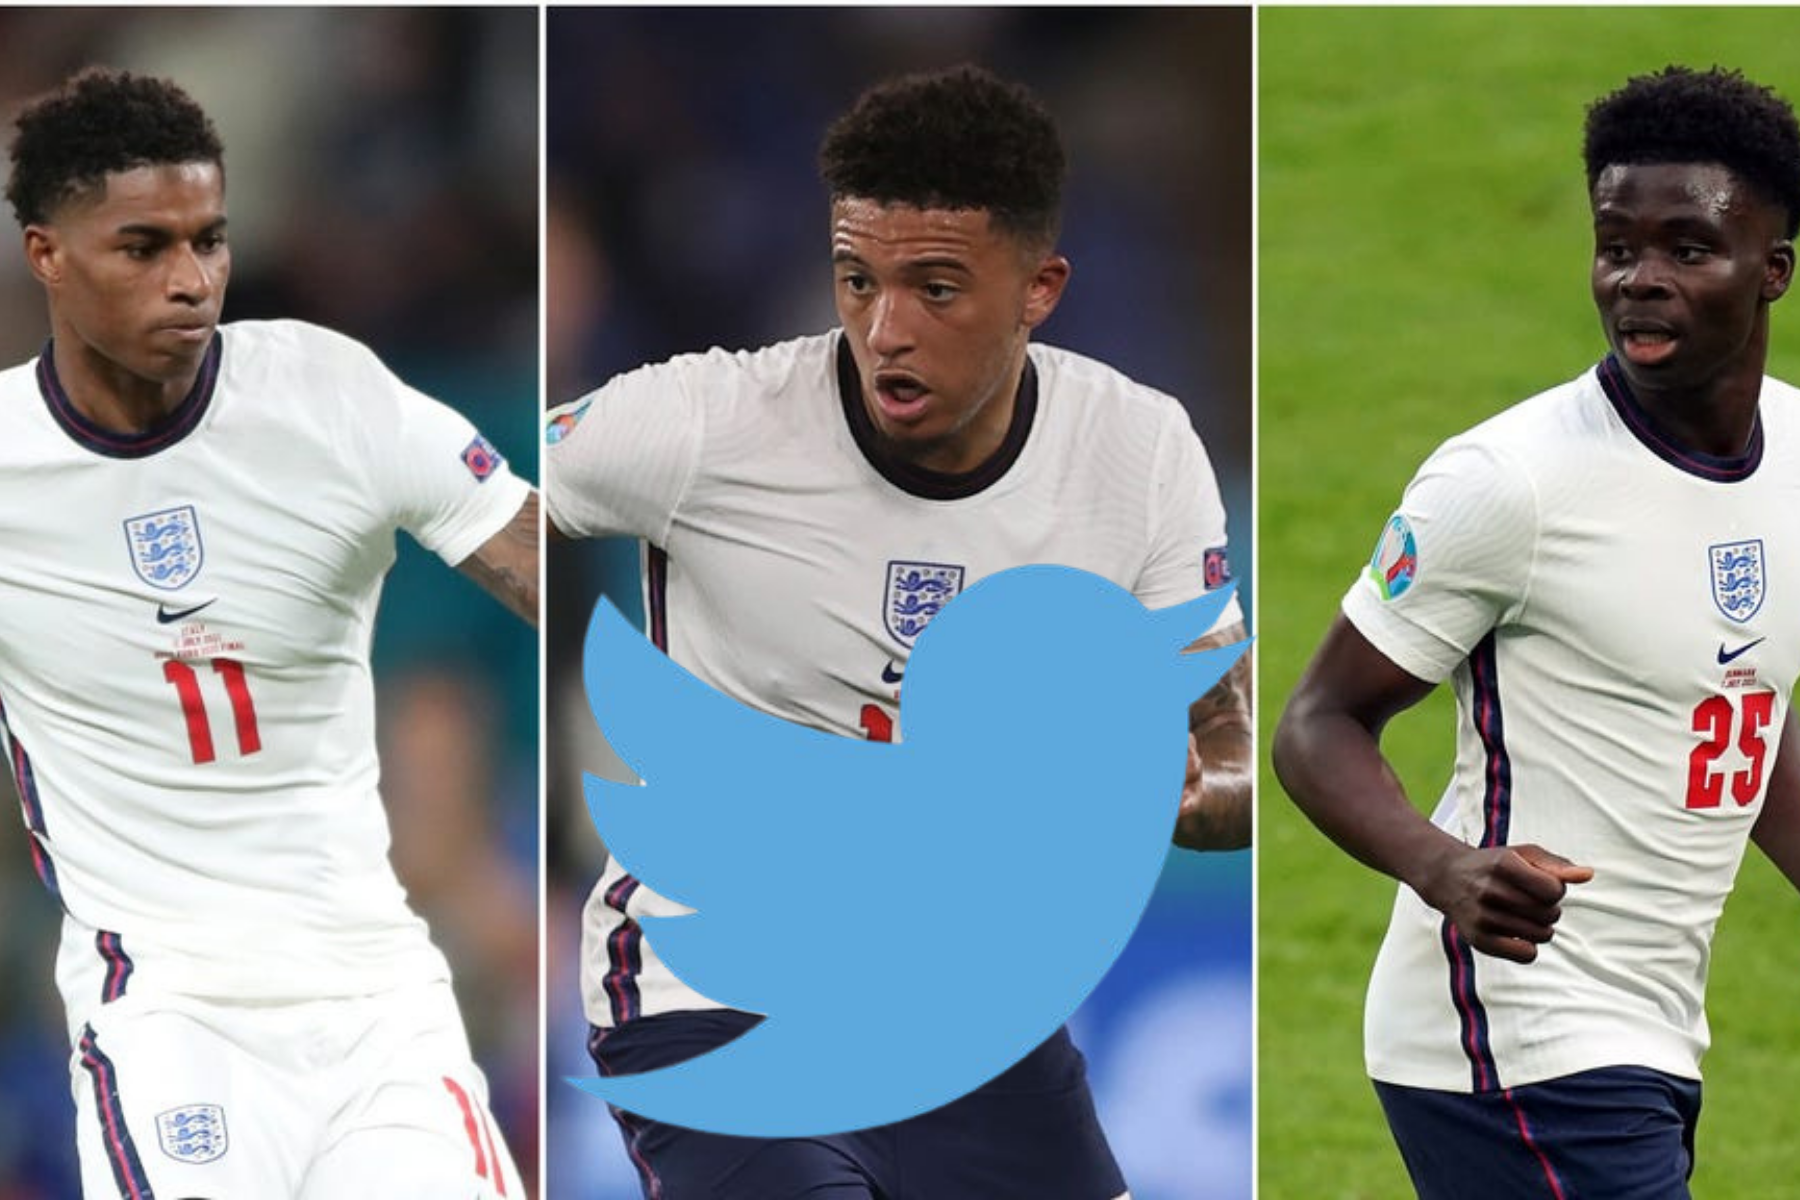 Twitter breaks silence on racist abuse of England players at Euro 2020